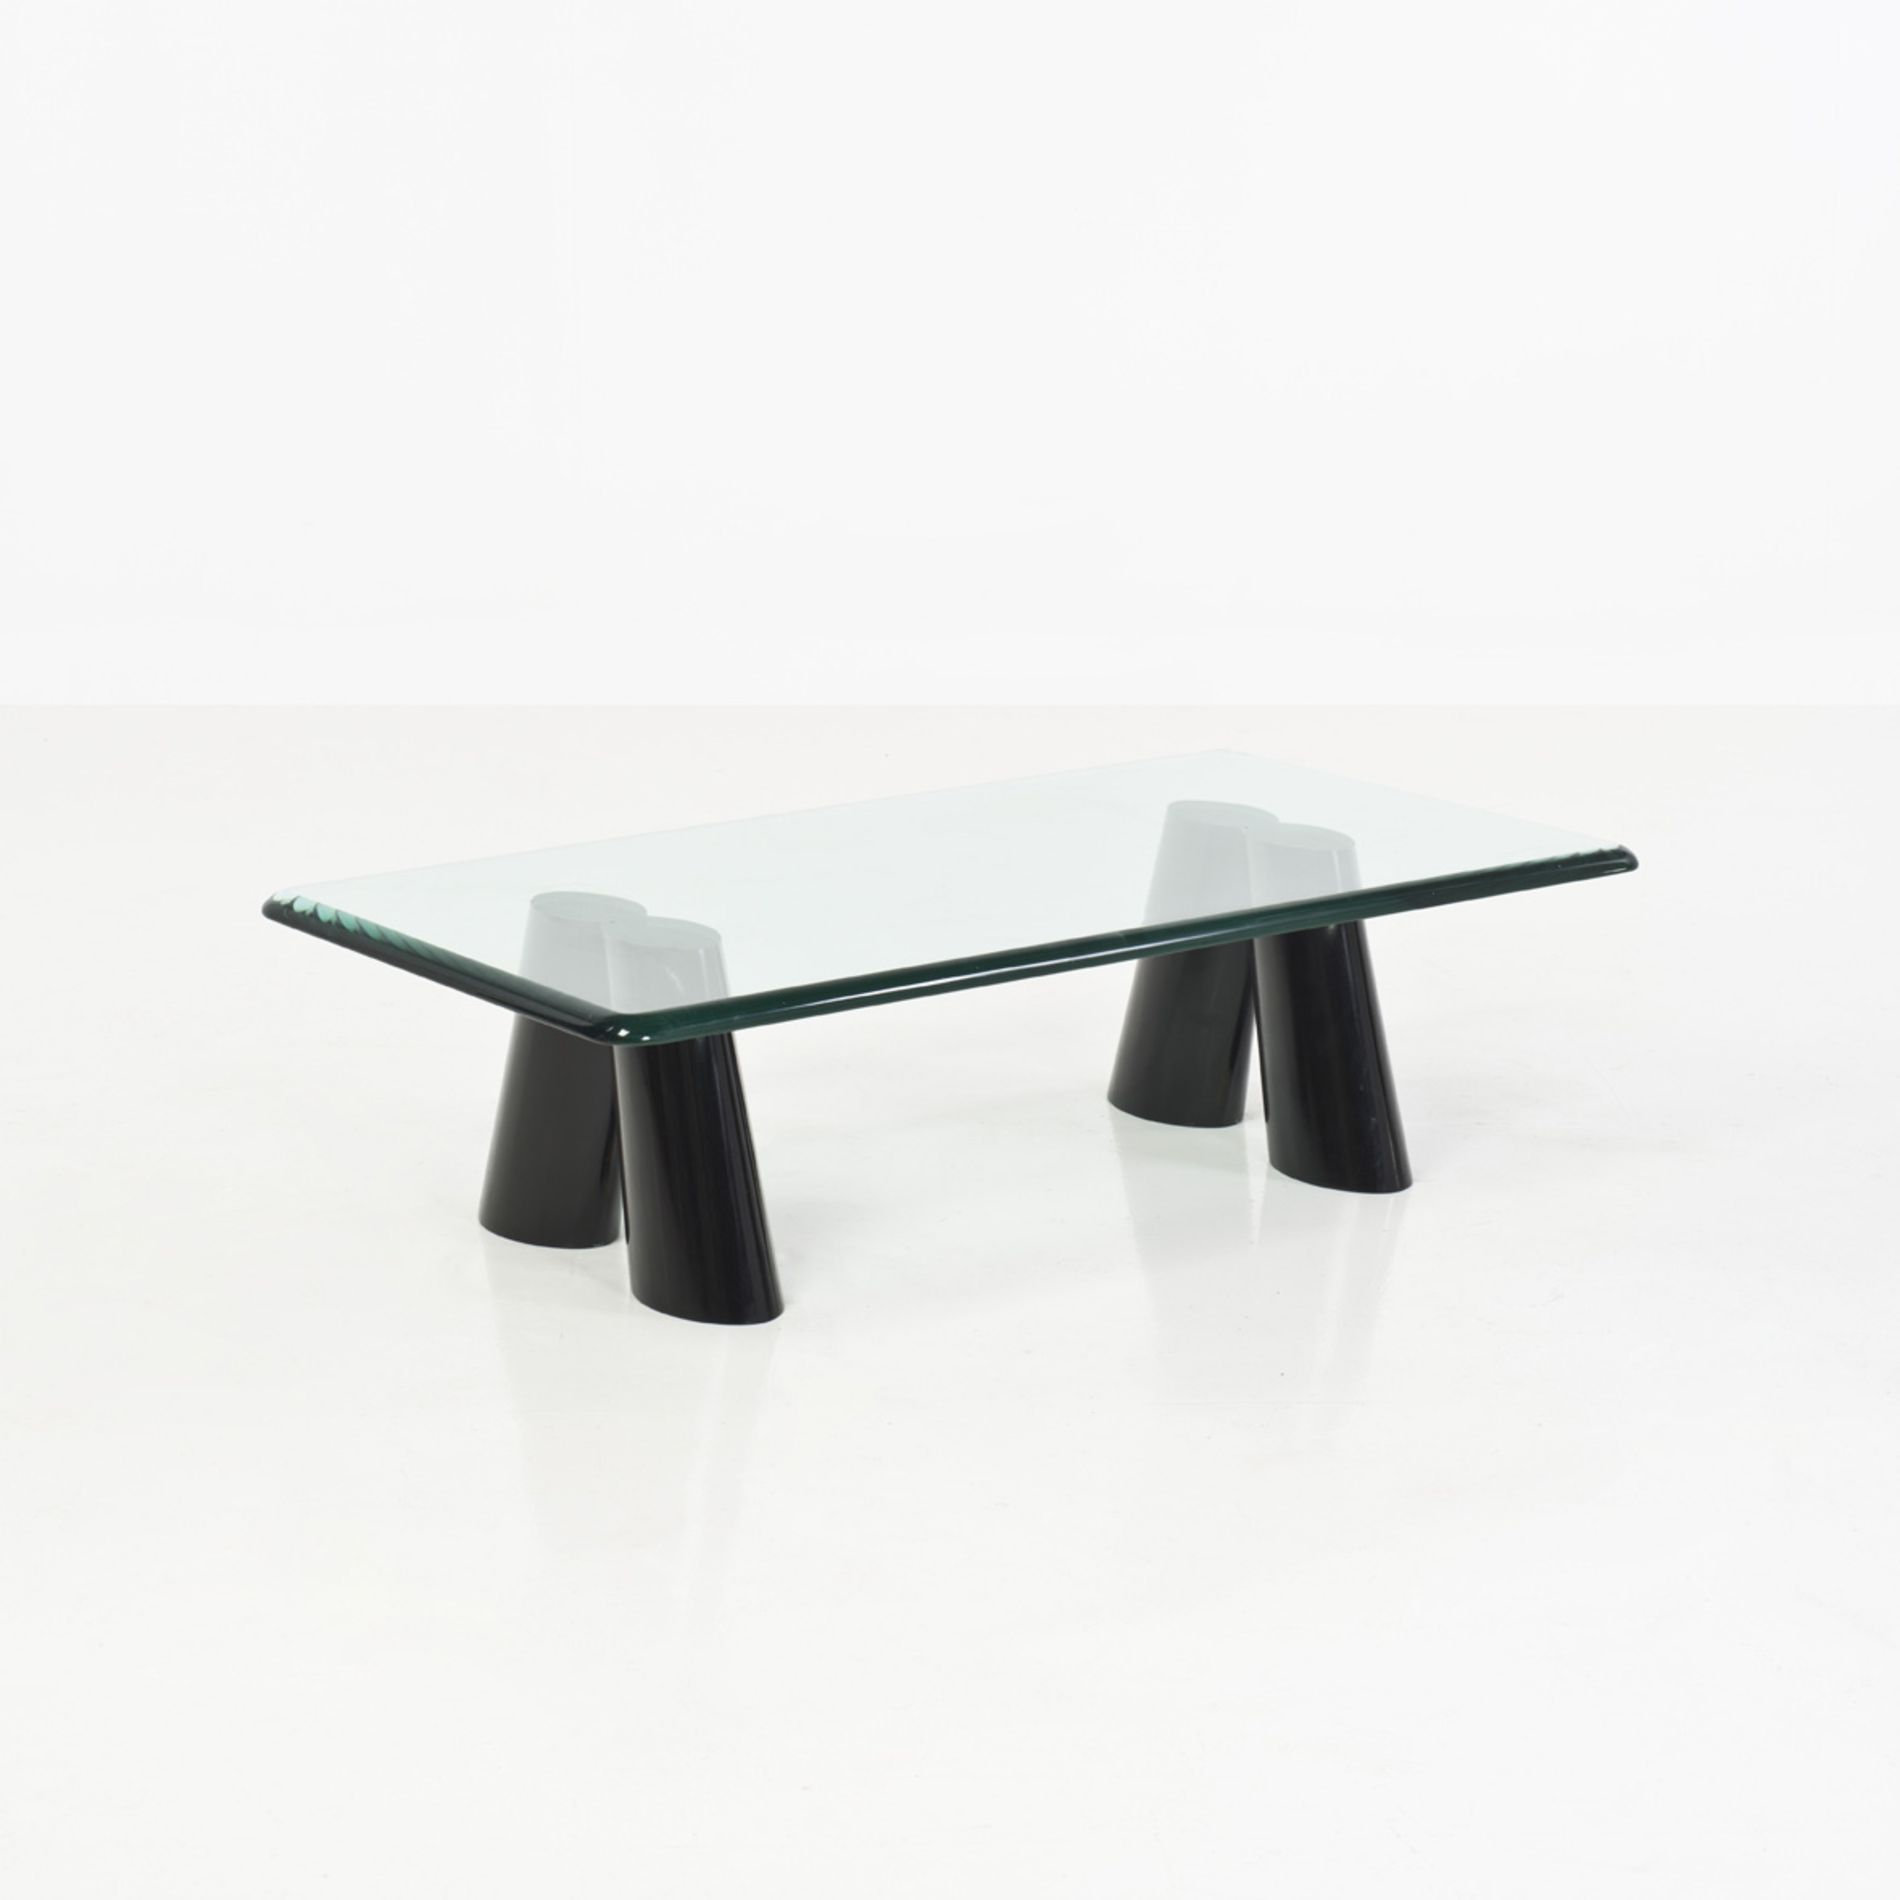 Pin By Guy Morgan On Tabled Selling Paintings Glass Coffee Table Contemporary Art Gallery [ 1900 x 1900 Pixel ]